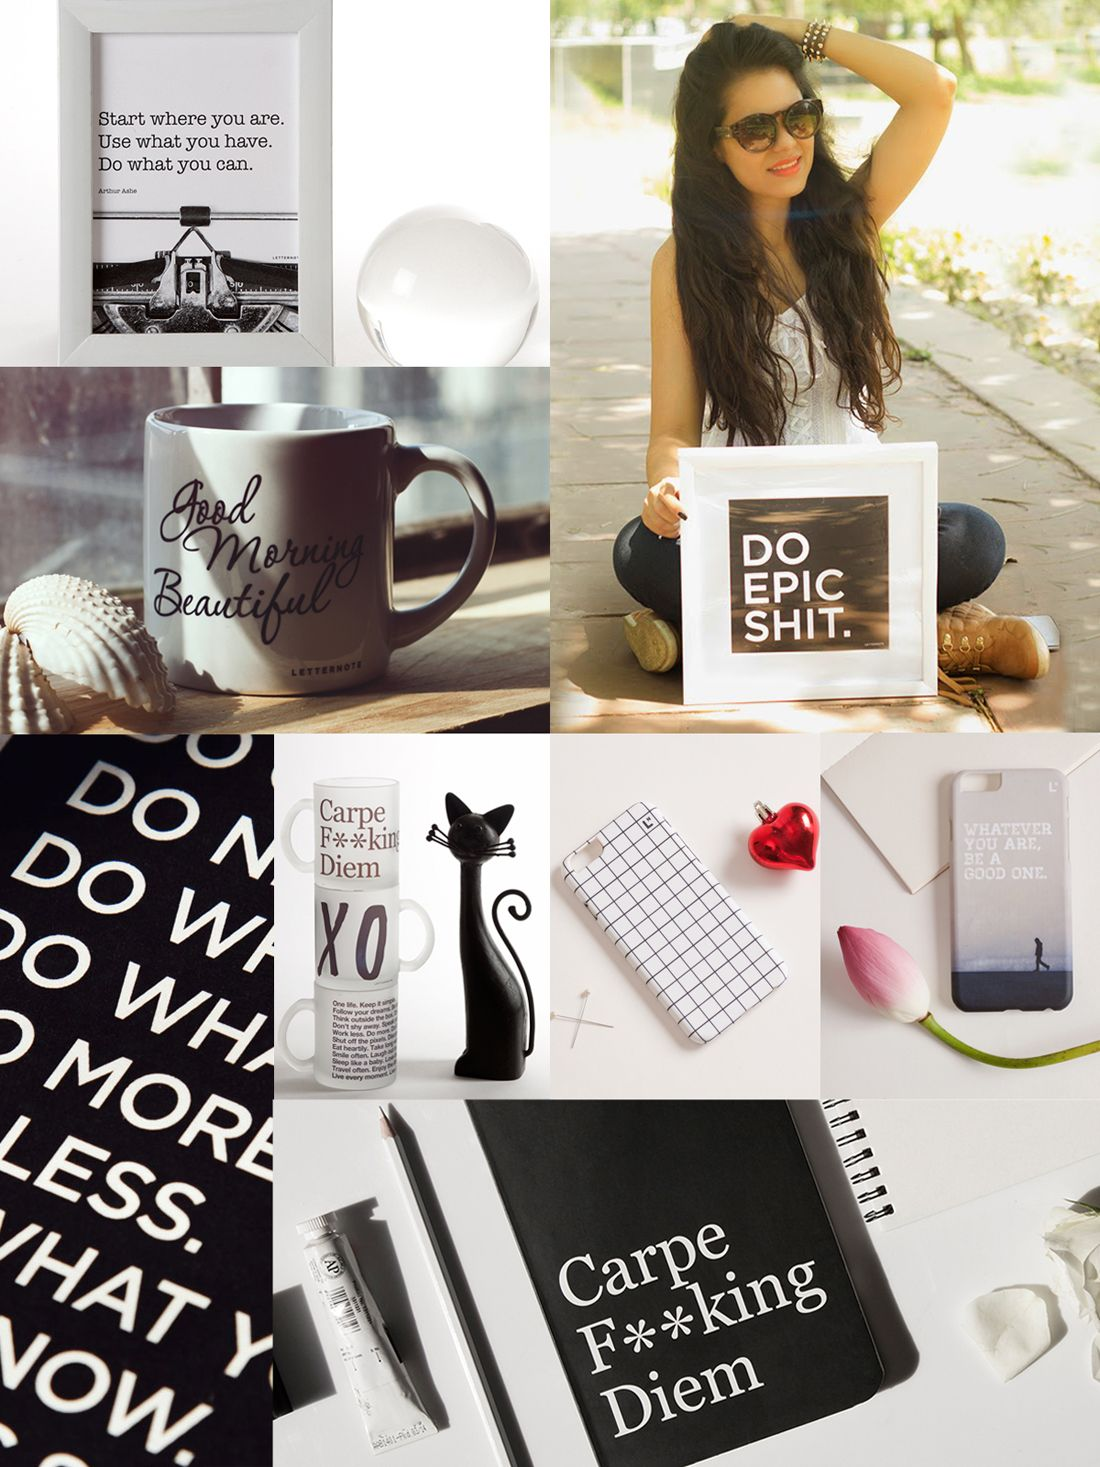 Welcome to our first Moodboard Tuesday 1 - In Black & White. #LetterNote #mug #chic #forher #giftsforher #girl #girlstuff #crazygirl #fashion #style #trend #swag #diva #gogirl #lifestyle Check this out - http://blog.letternote.com/moodboard-tuesdays-1-in-black-white